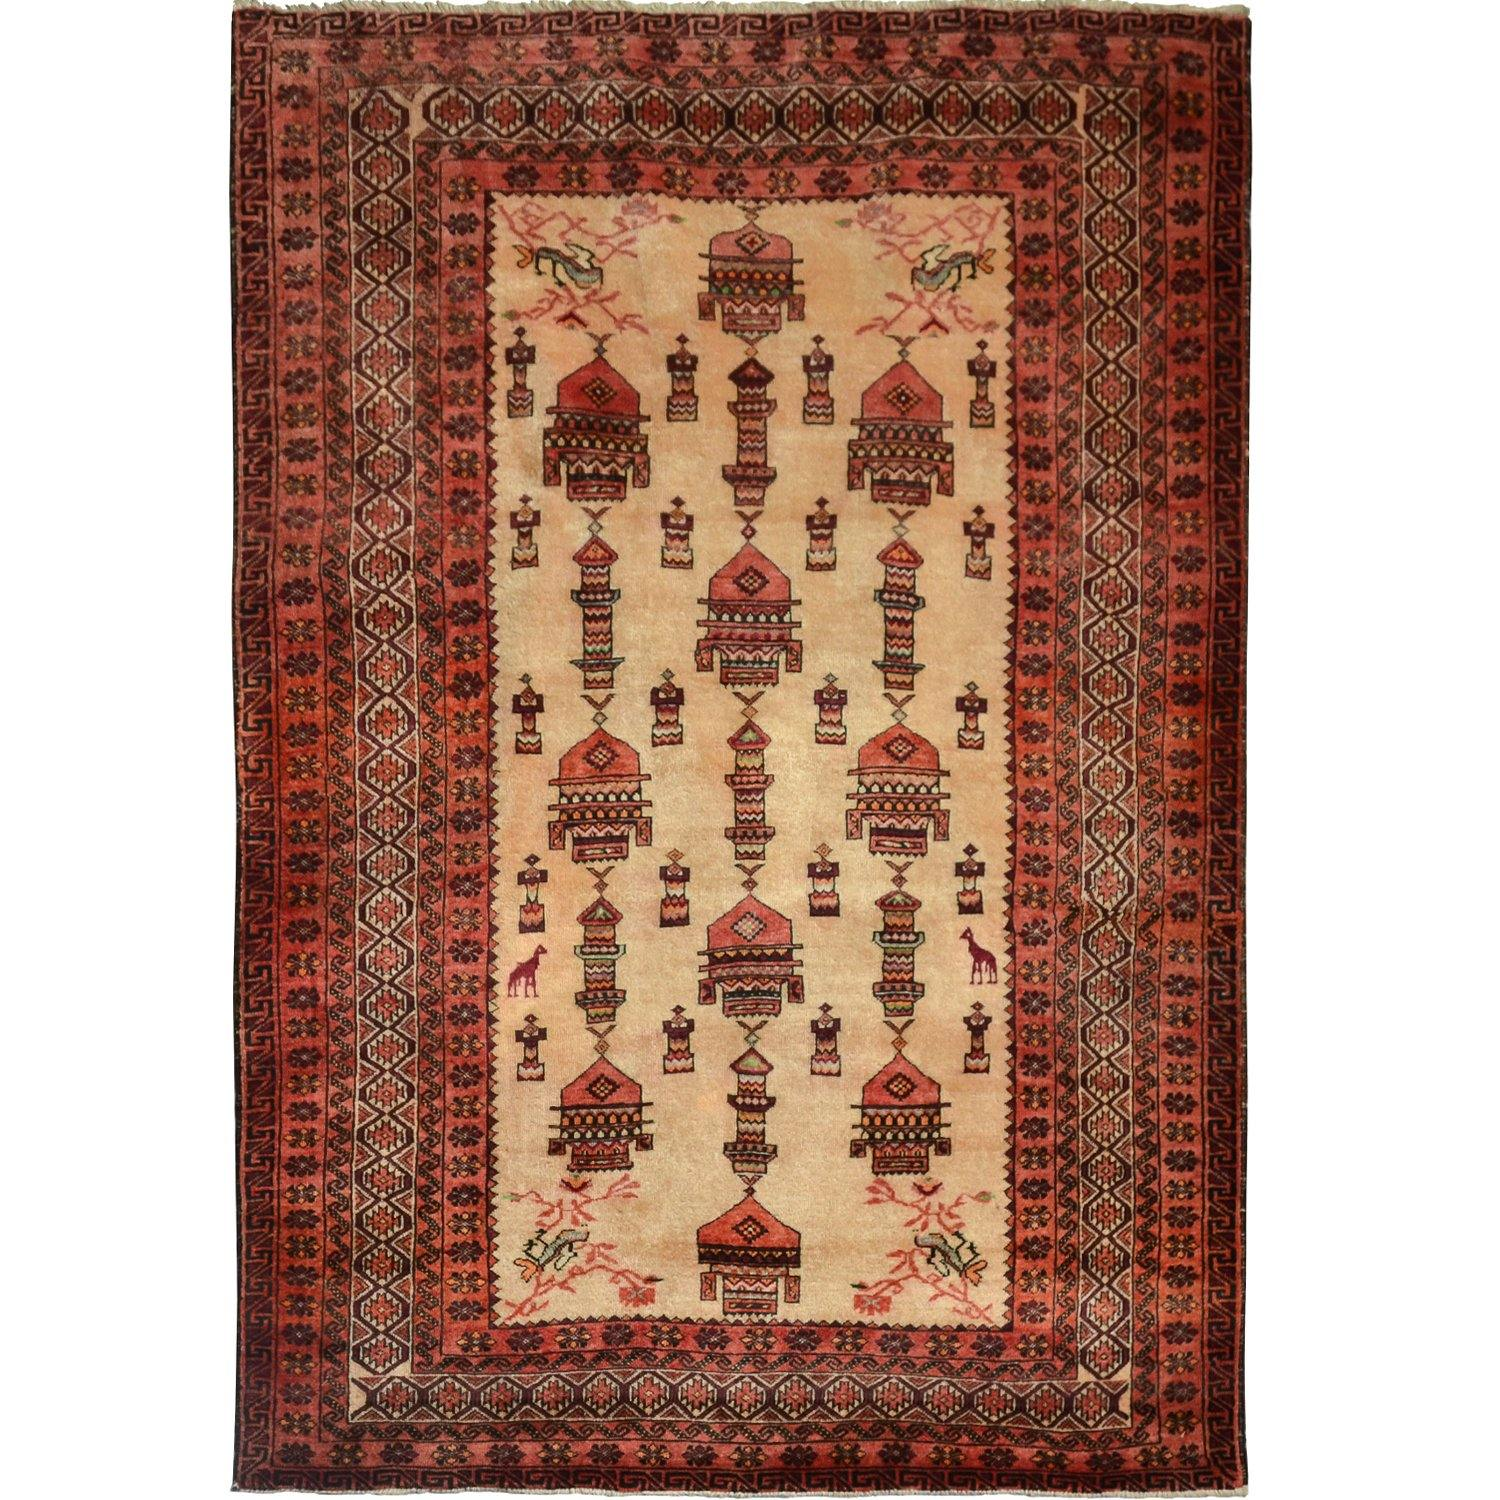 2021_19 Persian-Rug | House-of-Haghi | NewMarket | Auckland | NZ | Handmade Persian Rugs | Hand Knotted Persian Rugs